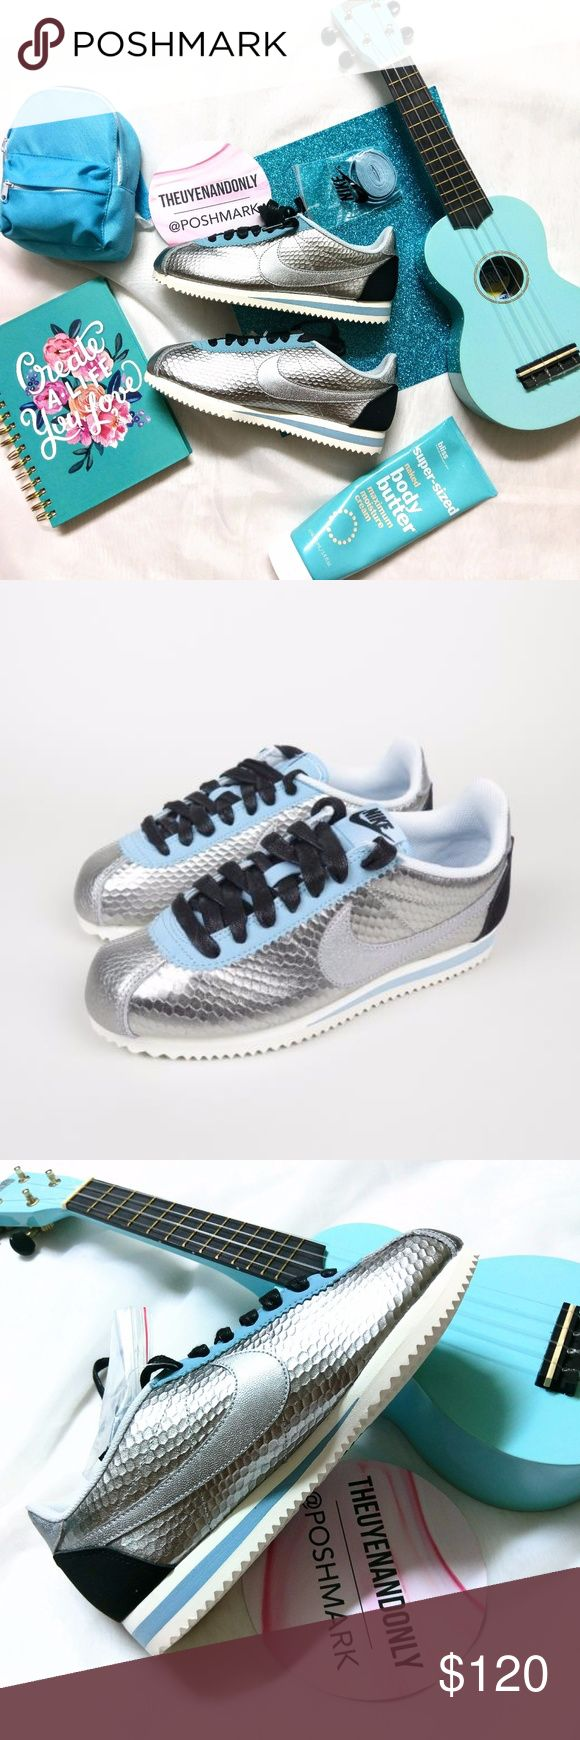 💠RARE💠 NEW Nike Cortez Classic Leather Metallic 💠NEW WITHOUT BOX - 100% Authentic  💠NO TRADE  💠Accept Reasonable Offer ONLY 💠SHOES ONLY. Other accessories in the cover pic are not included. Price firm during sale 💠RUDE, ADVERTISE, MEAN, PRICE COMPLAINT COMMENTS will be reported. 💠*Please note: Colors might appear a bit darker OR lighter due to differences in phone/computer monitor. Nike Shoes Sneakers